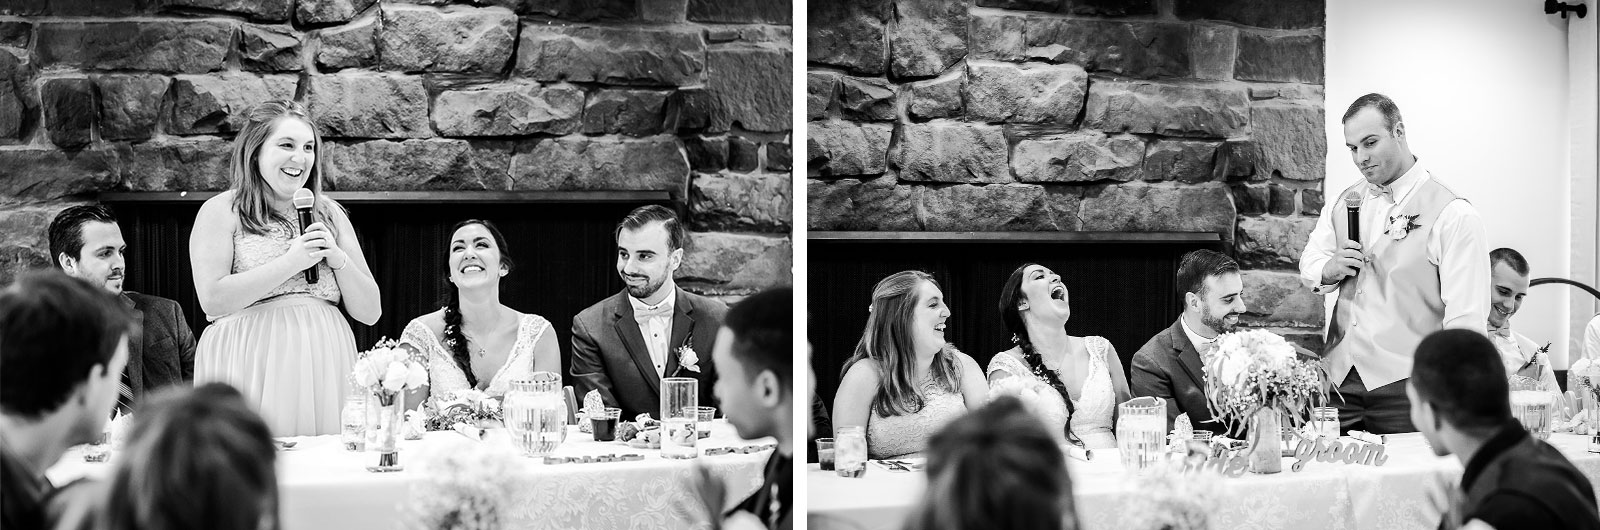 Eric_and_Christy_Photography_Blog_Katie_Travis_Wedding-59-60